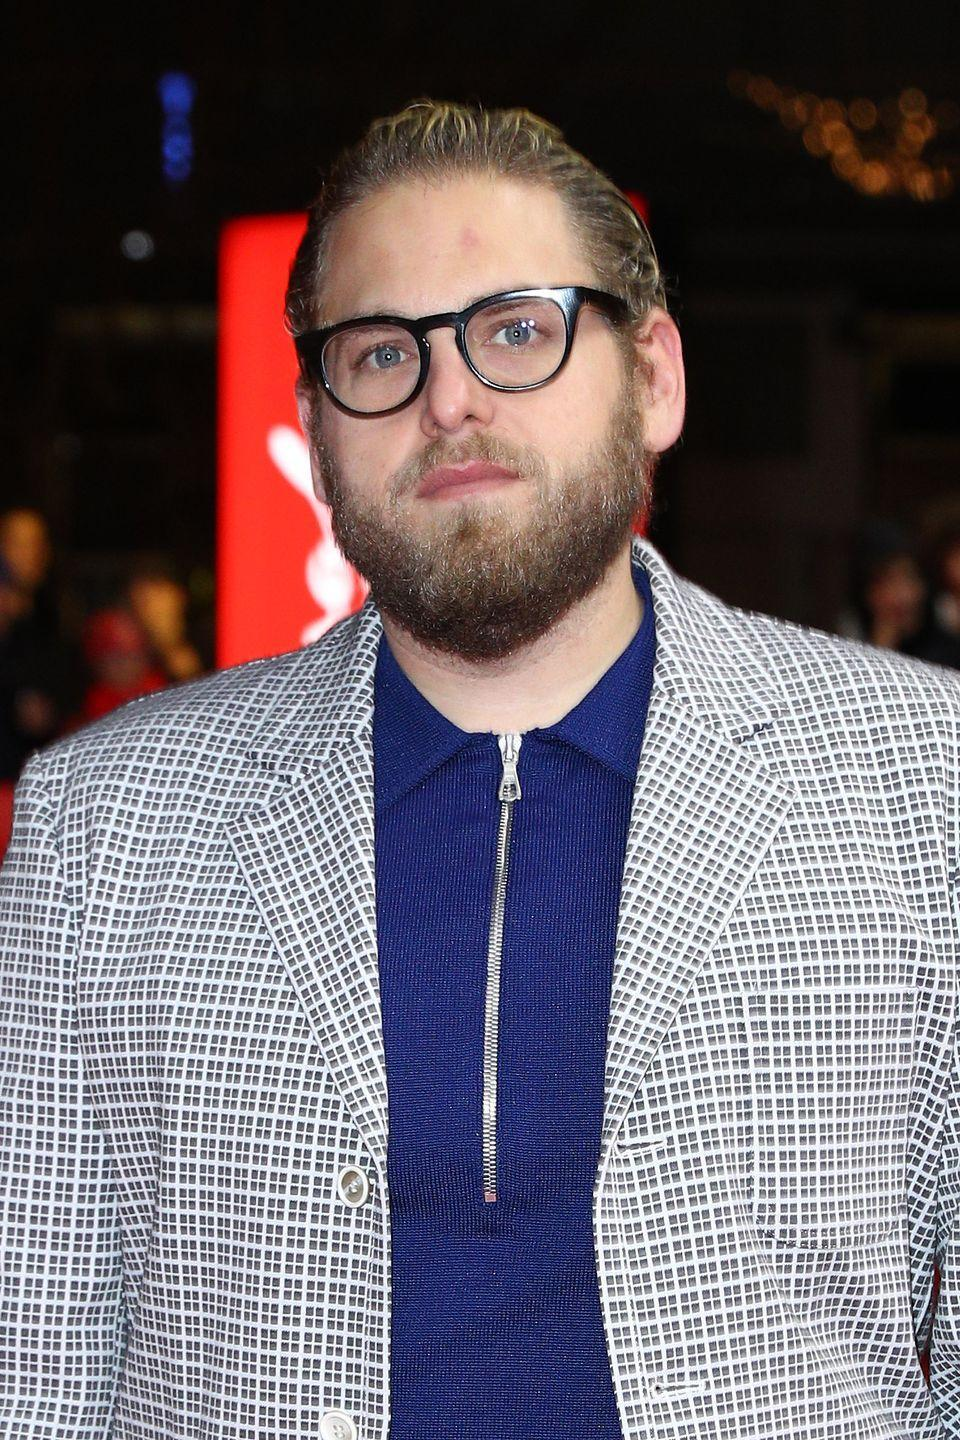 <p>Like Emma Stone, Hill got his big break in mid-aughts comedies like 2007's<em> Superbad.</em> He moved on to serious Oscar contenders, such as <em>The Wolf of Wall Street </em>(2013). Hill recently got his first TV lead in 2018's <em>Maniac </em>as Owen Milgrim, a sad New Yorker recovering from a mental breakdown. </p>